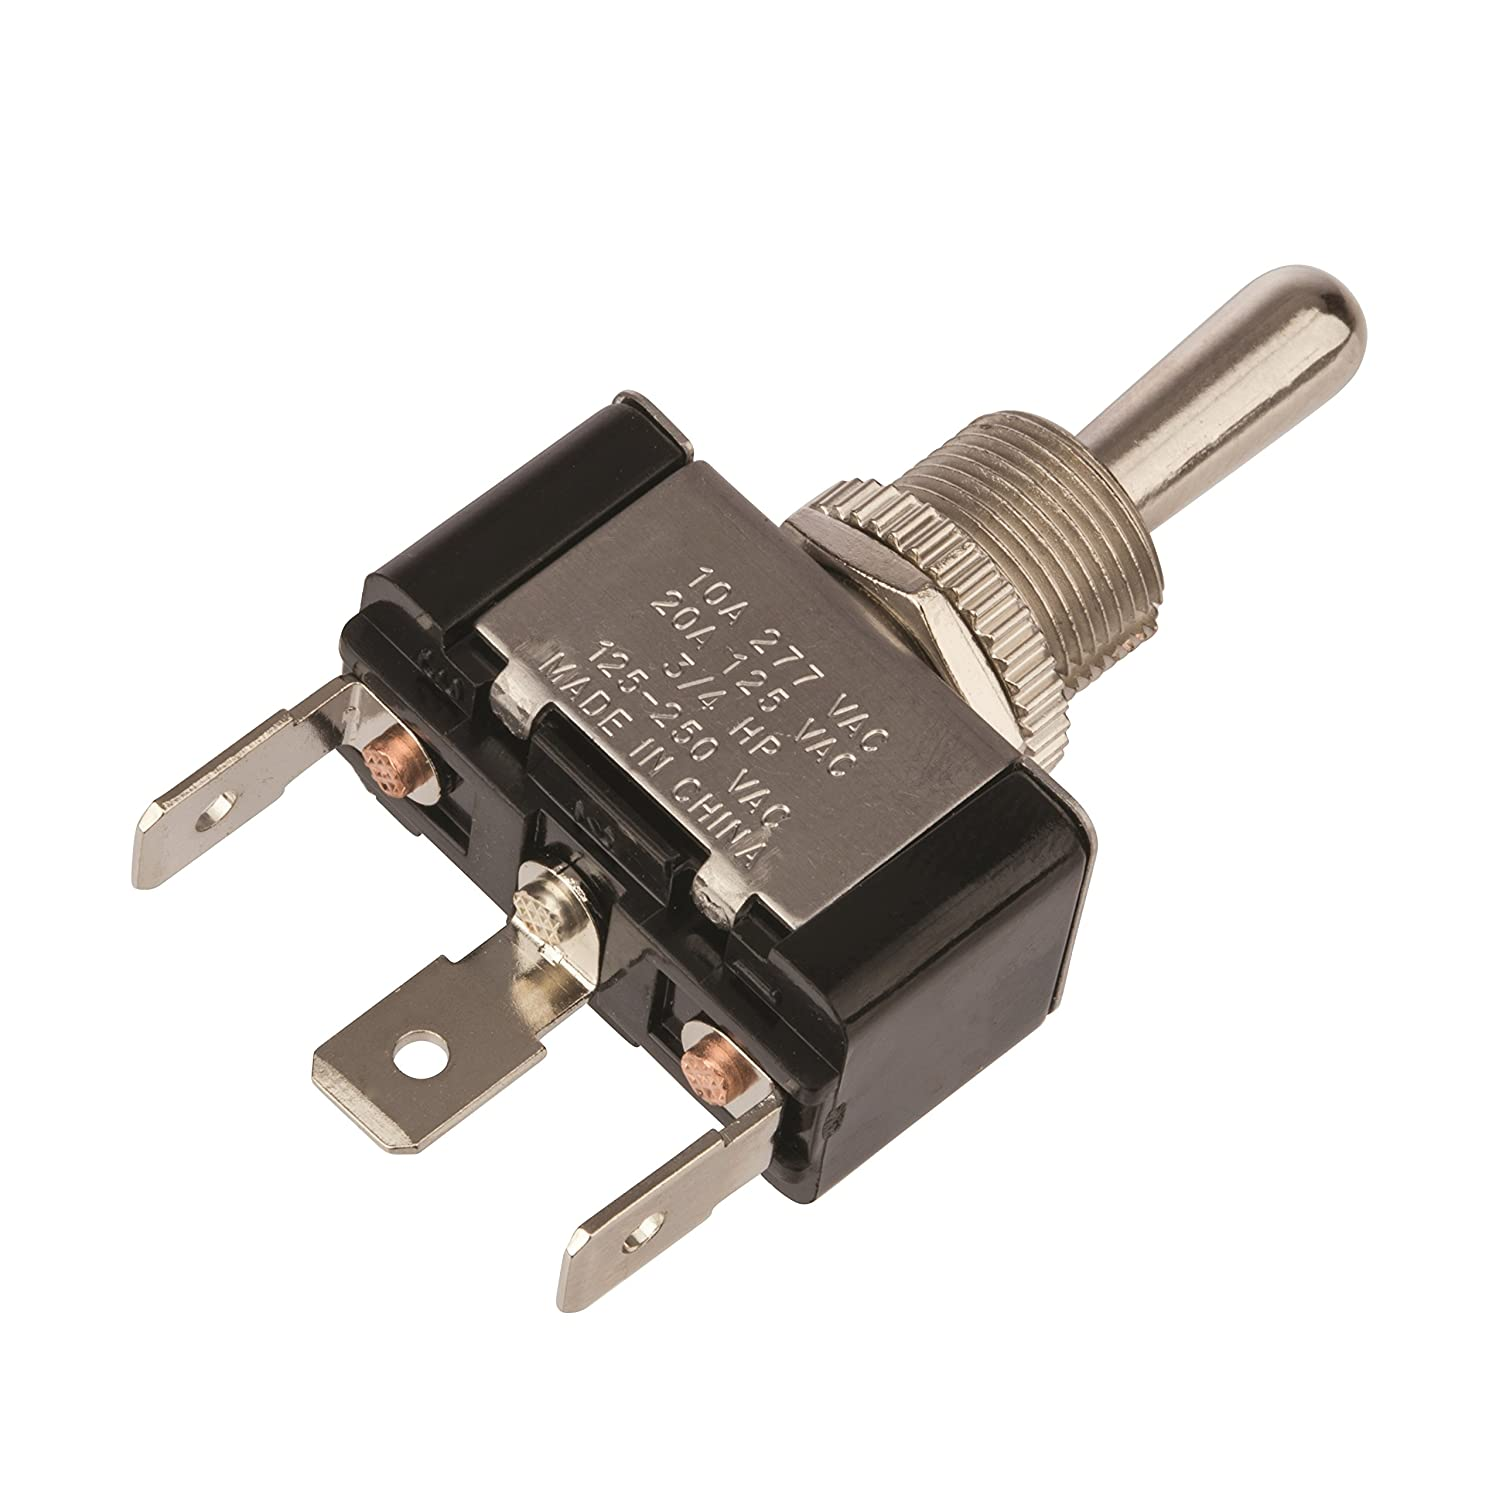 20//10 amps at 125//250 VAC On Off On Circut Function Toggle Switch Brass//Nickel Actuator Maintained Contact and Single Pole 0.250 Quikconnect Connection SPDT